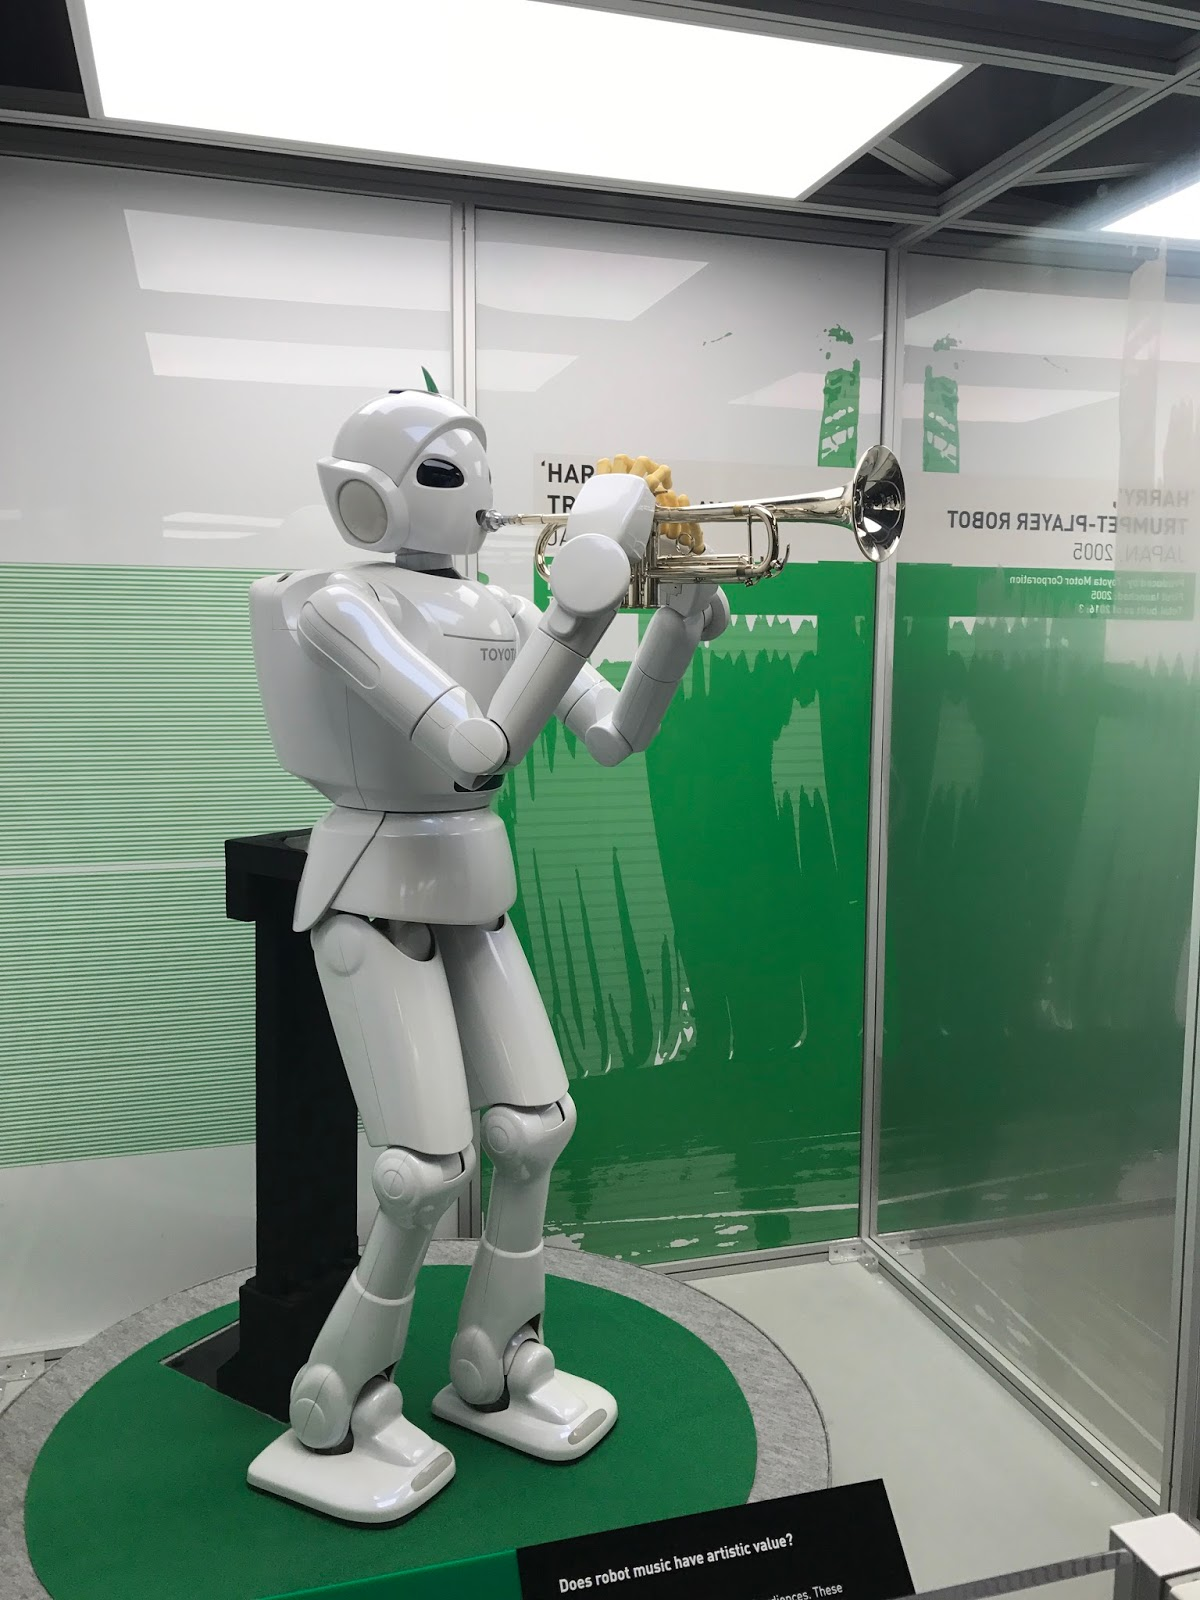 Toyota's trumpet playing robot